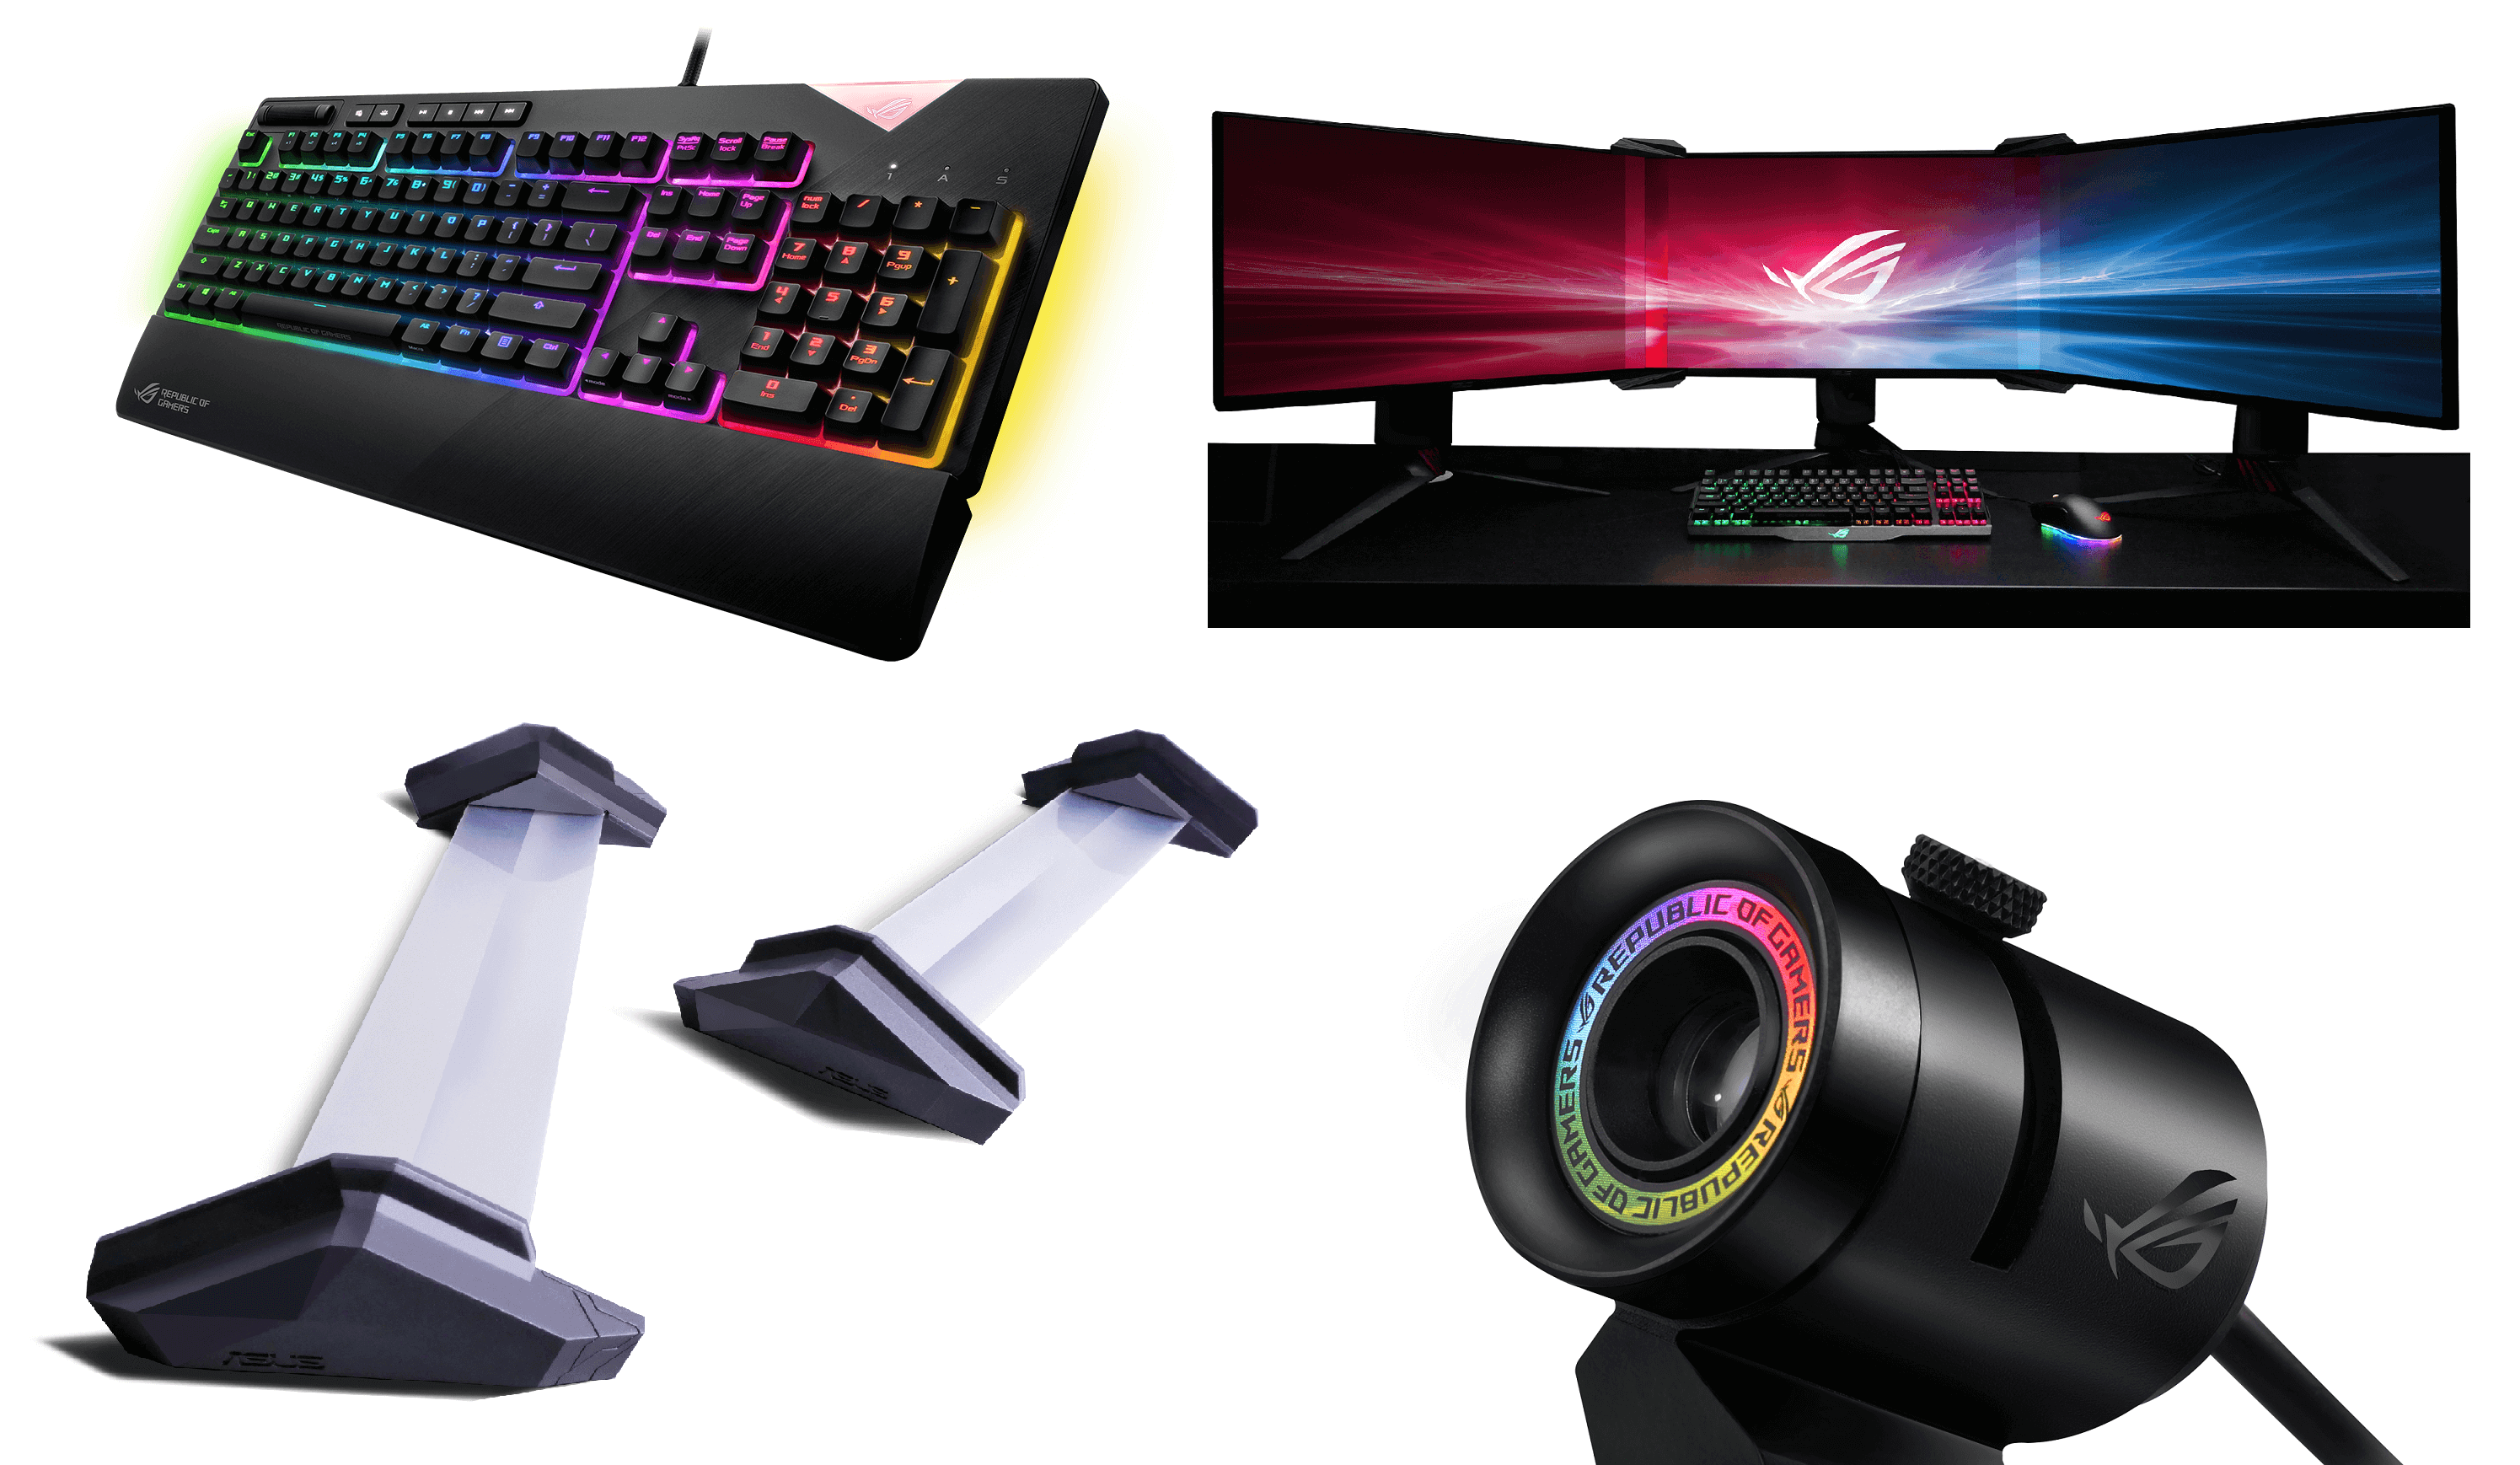 , ASUS ROG Announces Latest Gaming Gear at CES 2018, Gadget Pilipinas, Gadget Pilipinas